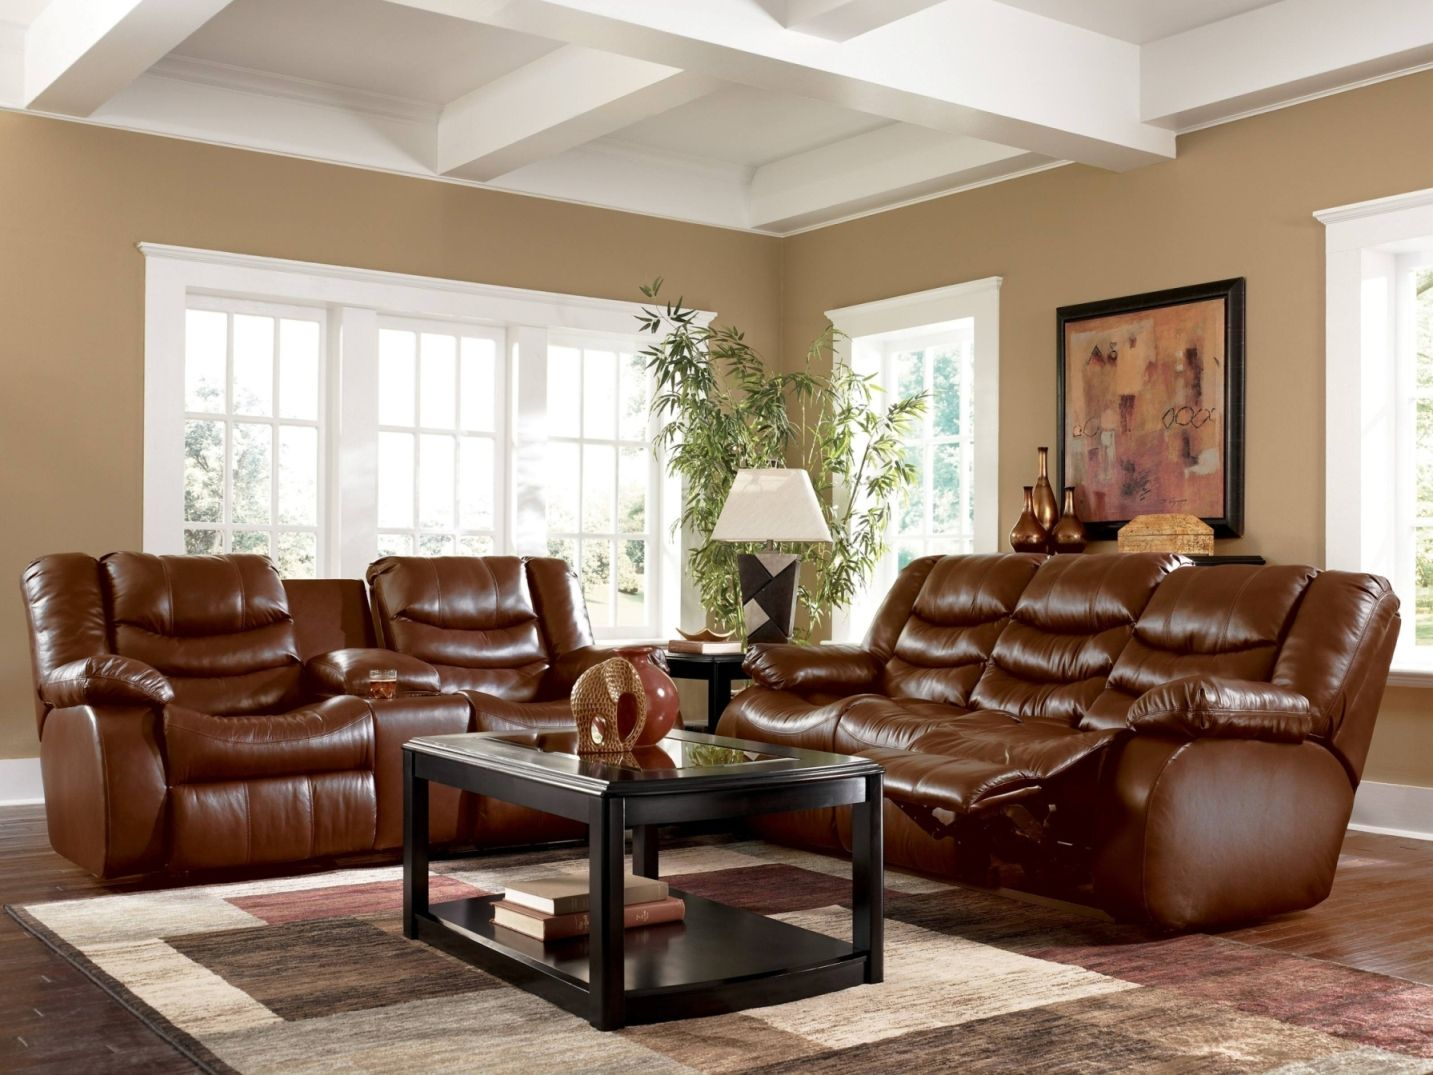 Used Living Room Chairs Leather Couch Decorating Ideas Living Room Home Design